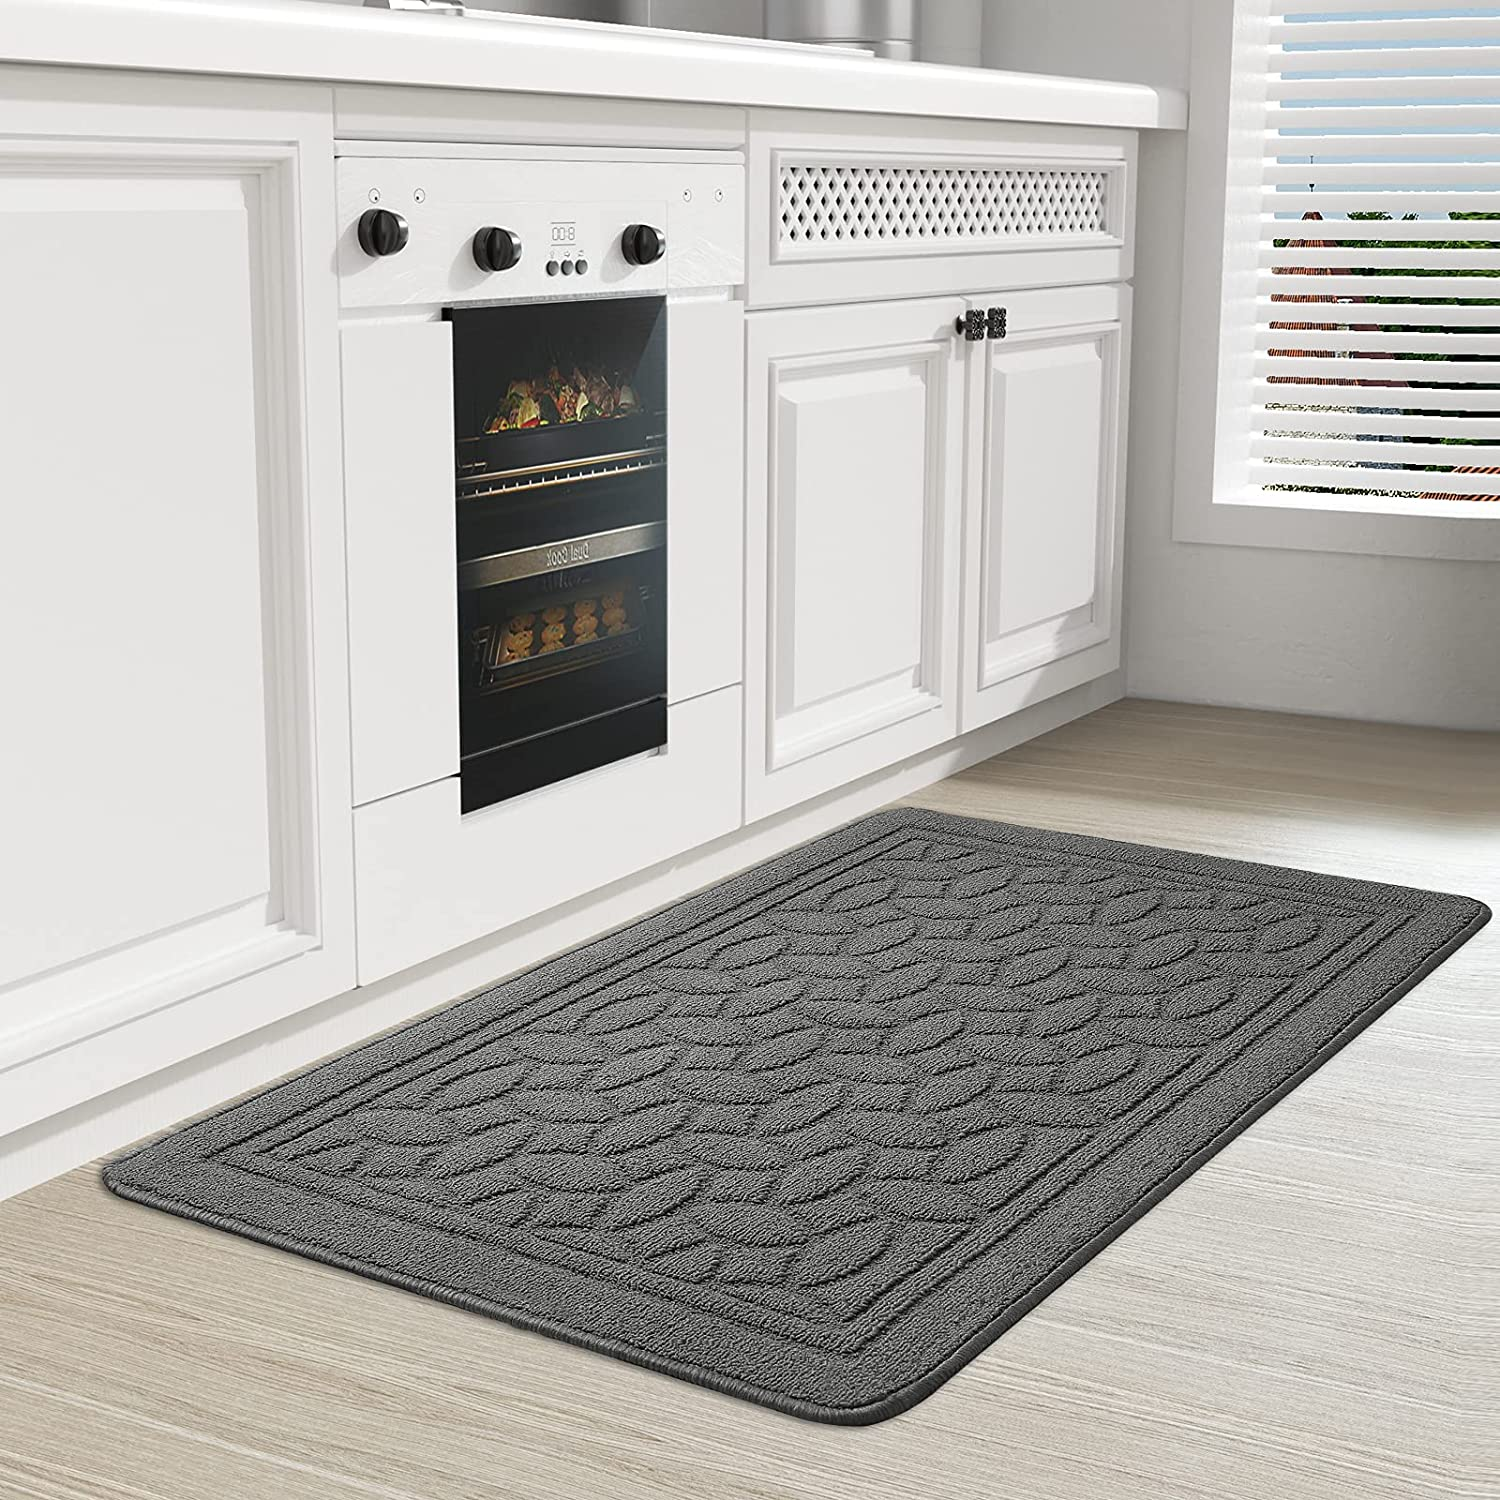 ColorGeometry Kitchen Mat Non-Skid and sold out Rugs In stock Mats Machin